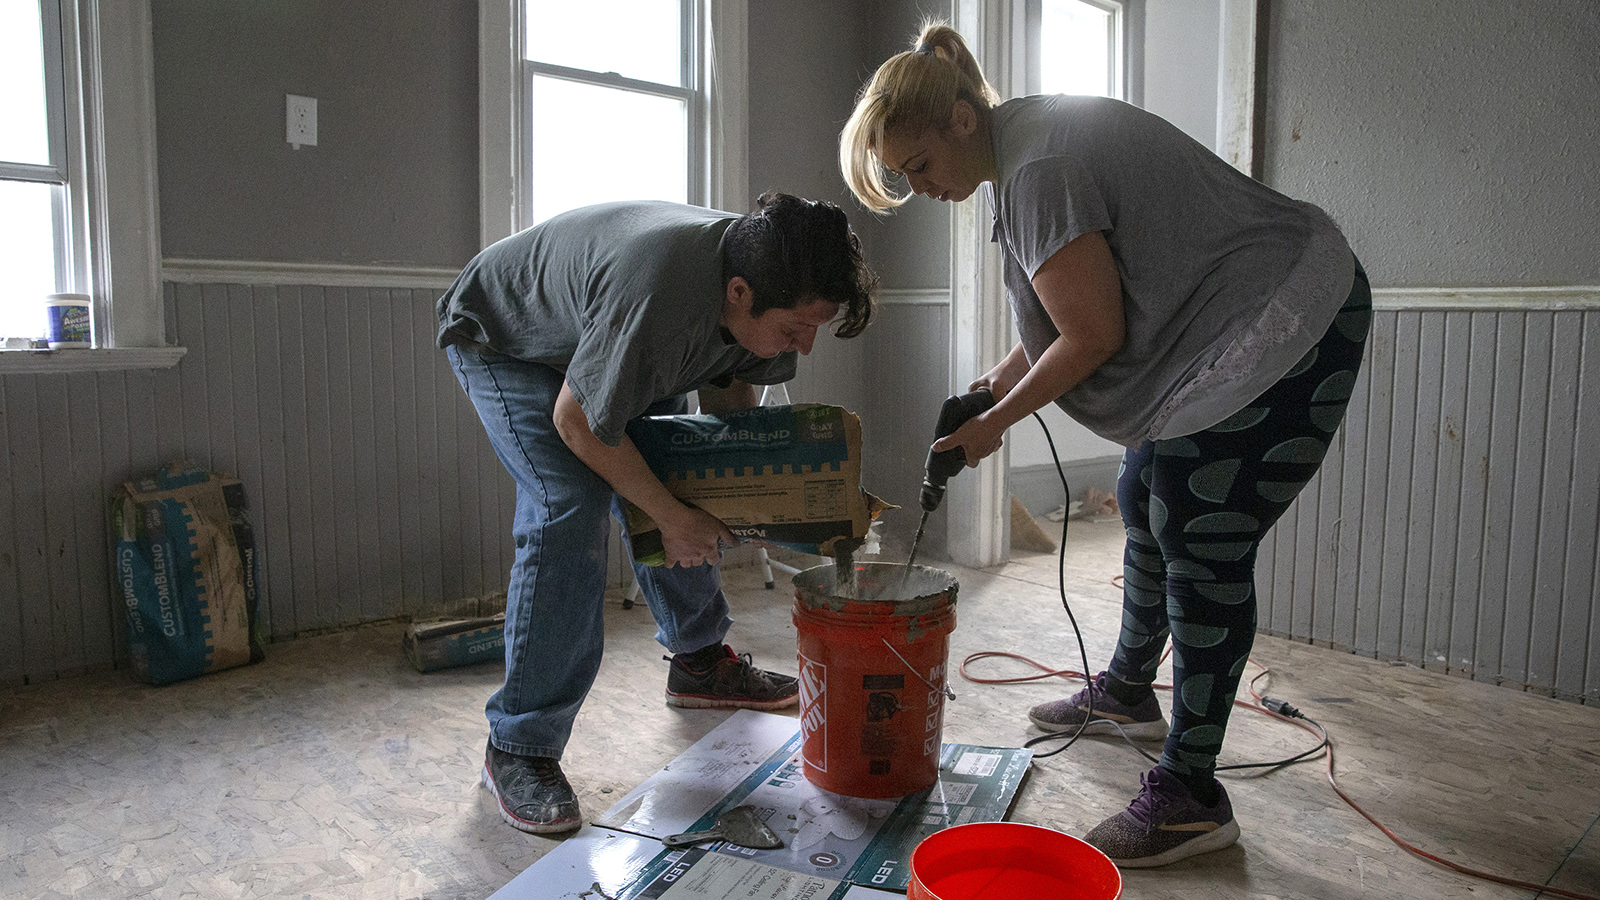 Two people prepare concrete for tiling inside room of a house being renovated